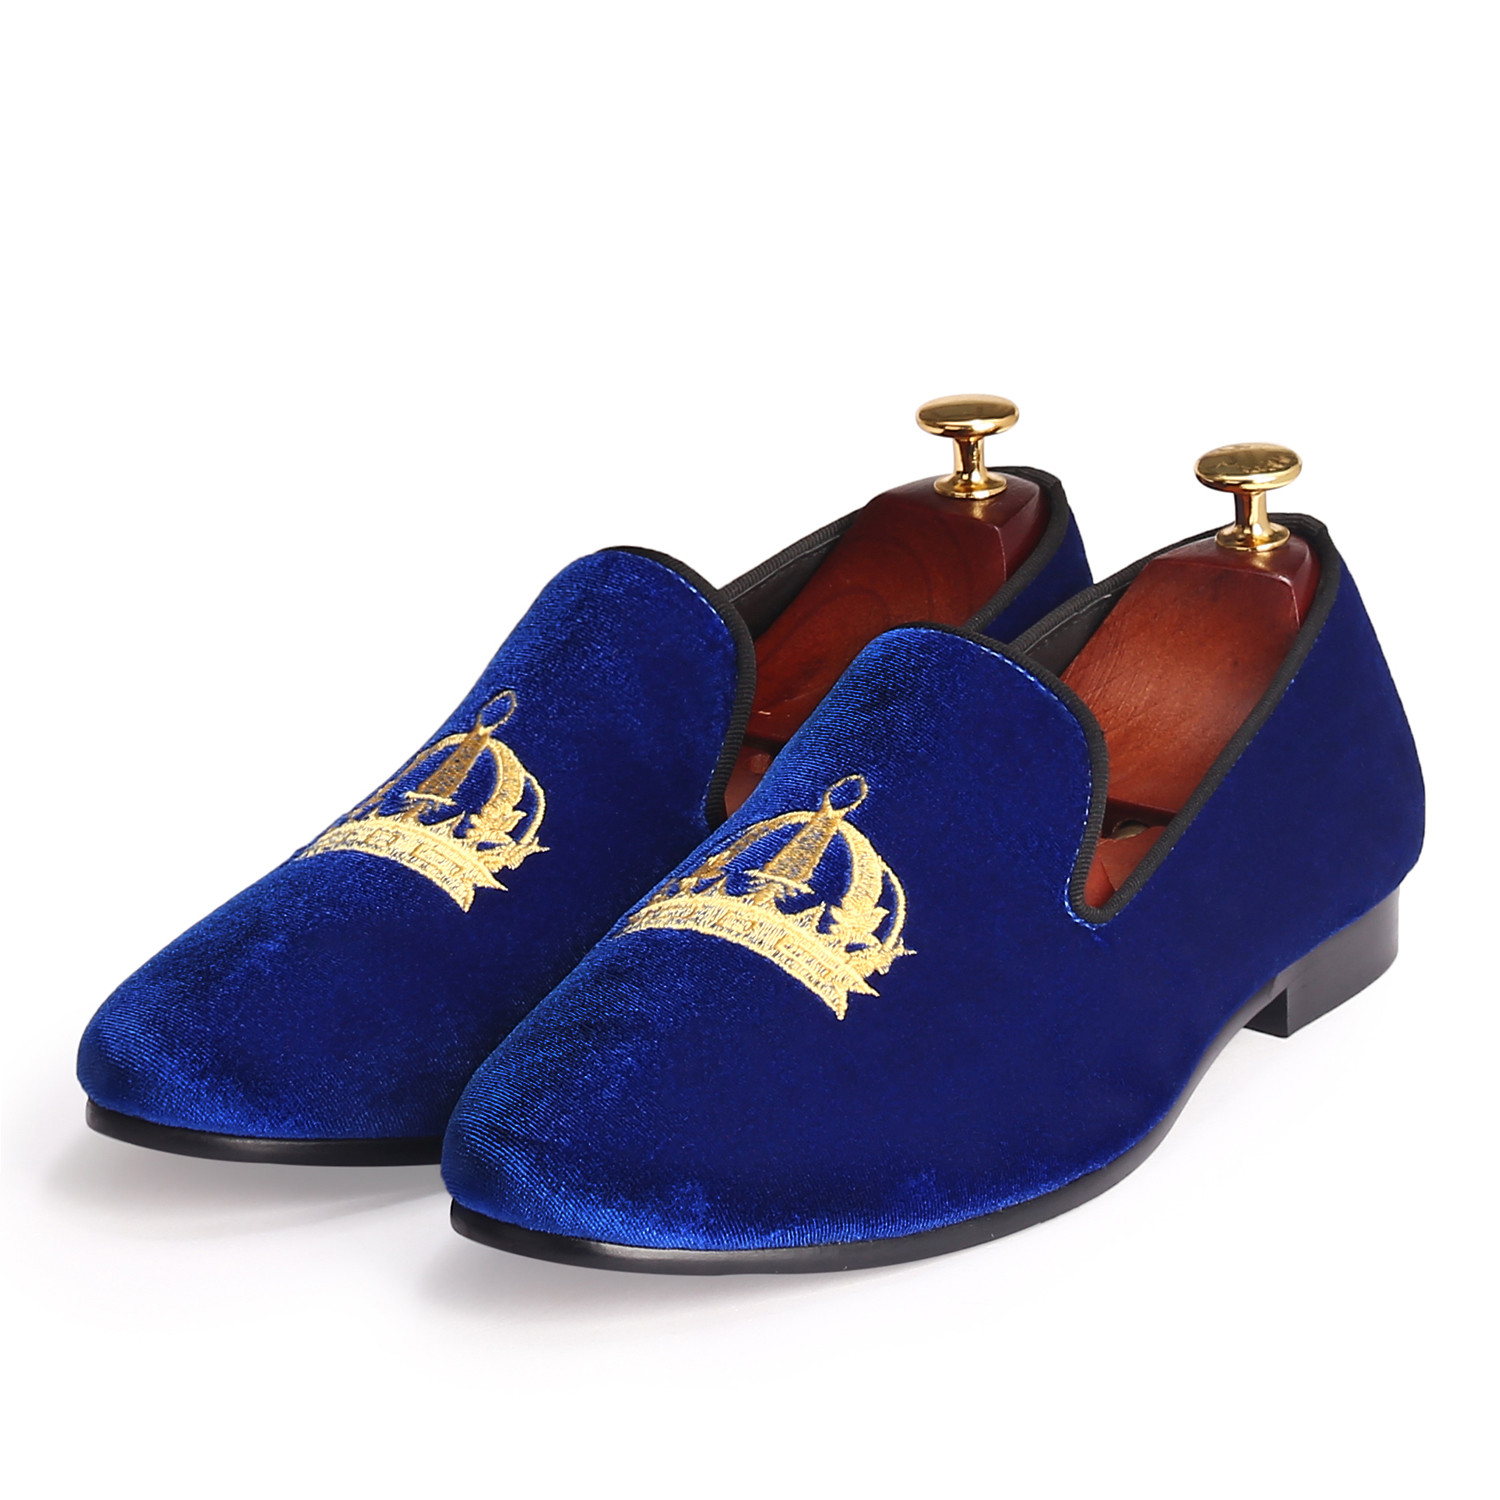 Wedding Mens Shoes Slip On Round Toe Men Embroidery Shoes Velvet Loafers Blue Footwear Comfortable Red Bottom Shoes Size 7-14